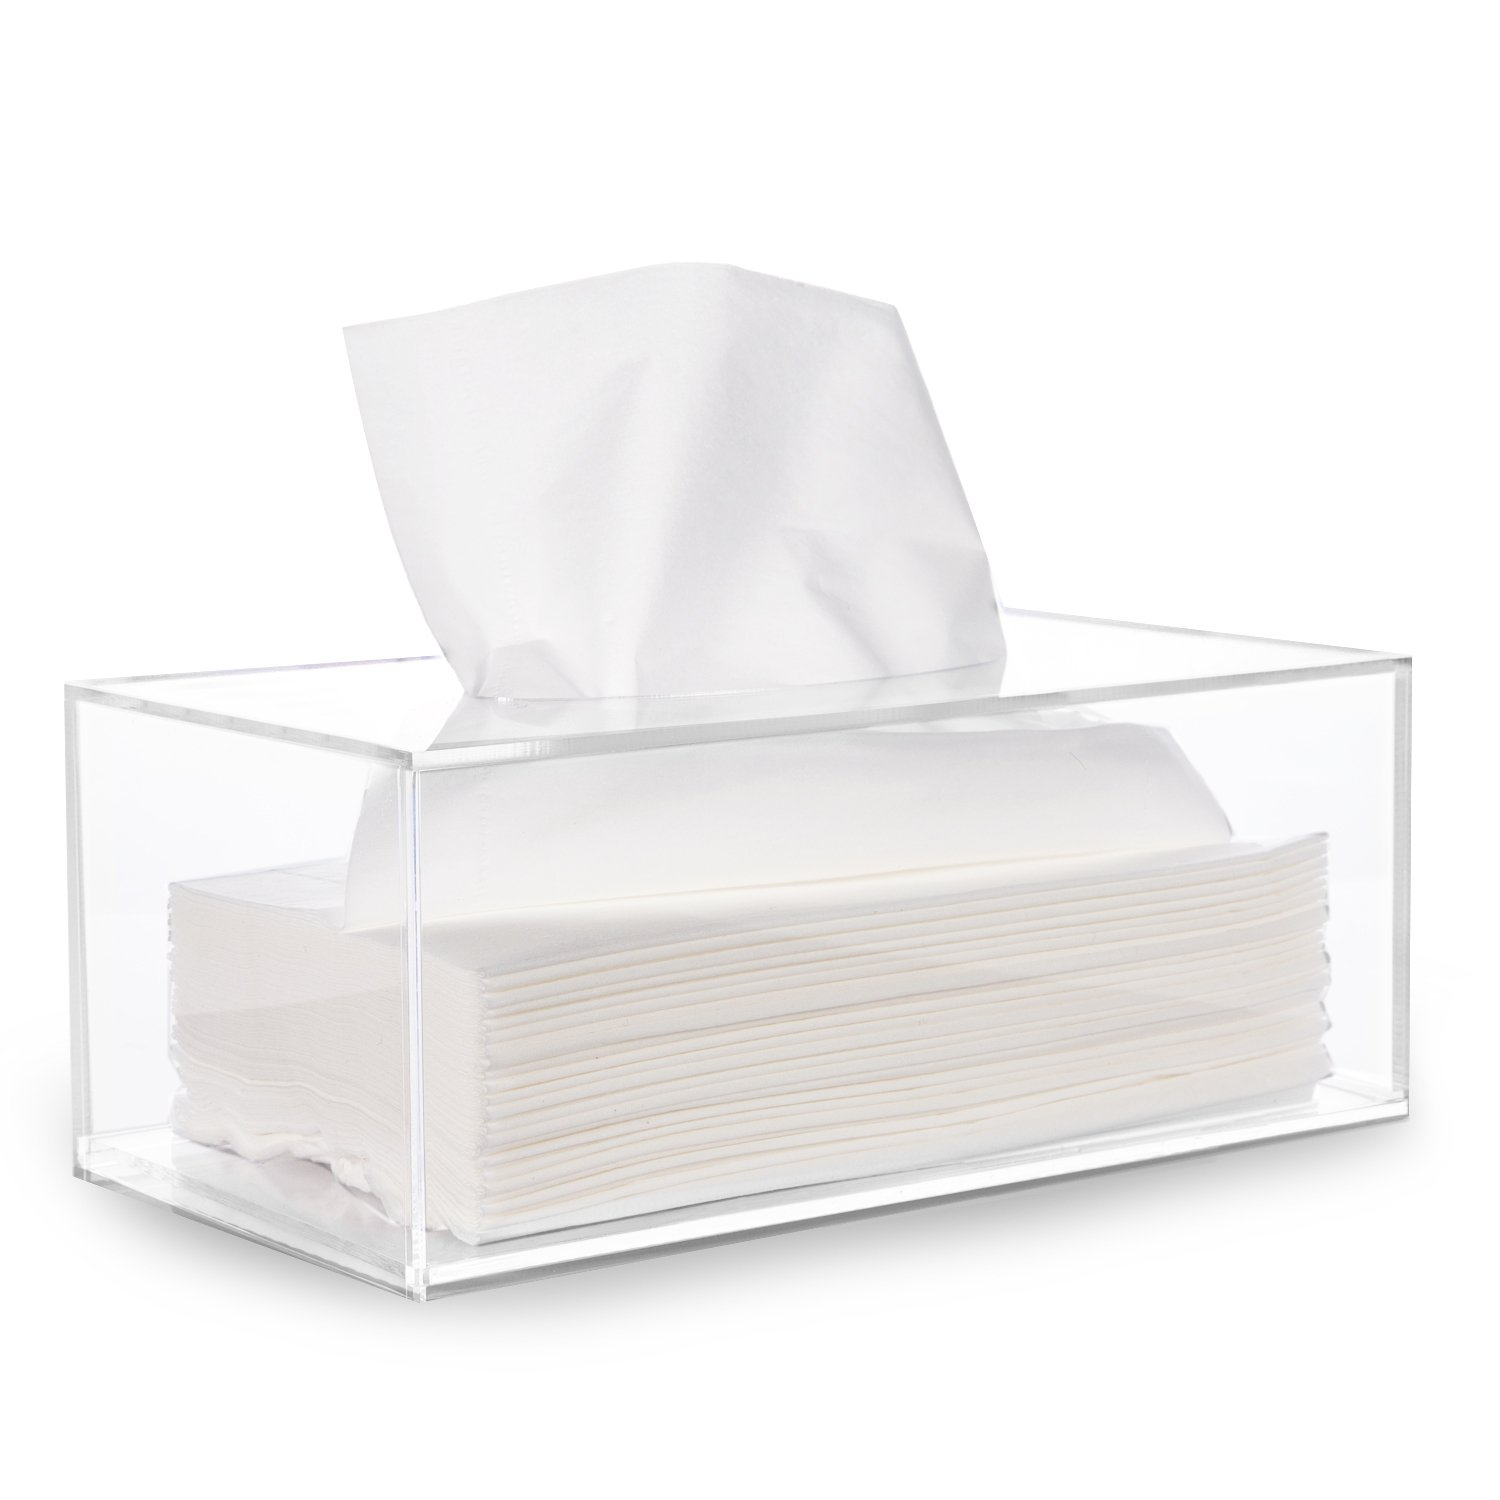 hblife Facial Tissue Dispenser Box Cover Holder Clear Acrylic Rectangle Napkin Organizer for Bathroom, Kitchen and Office Room by hblife